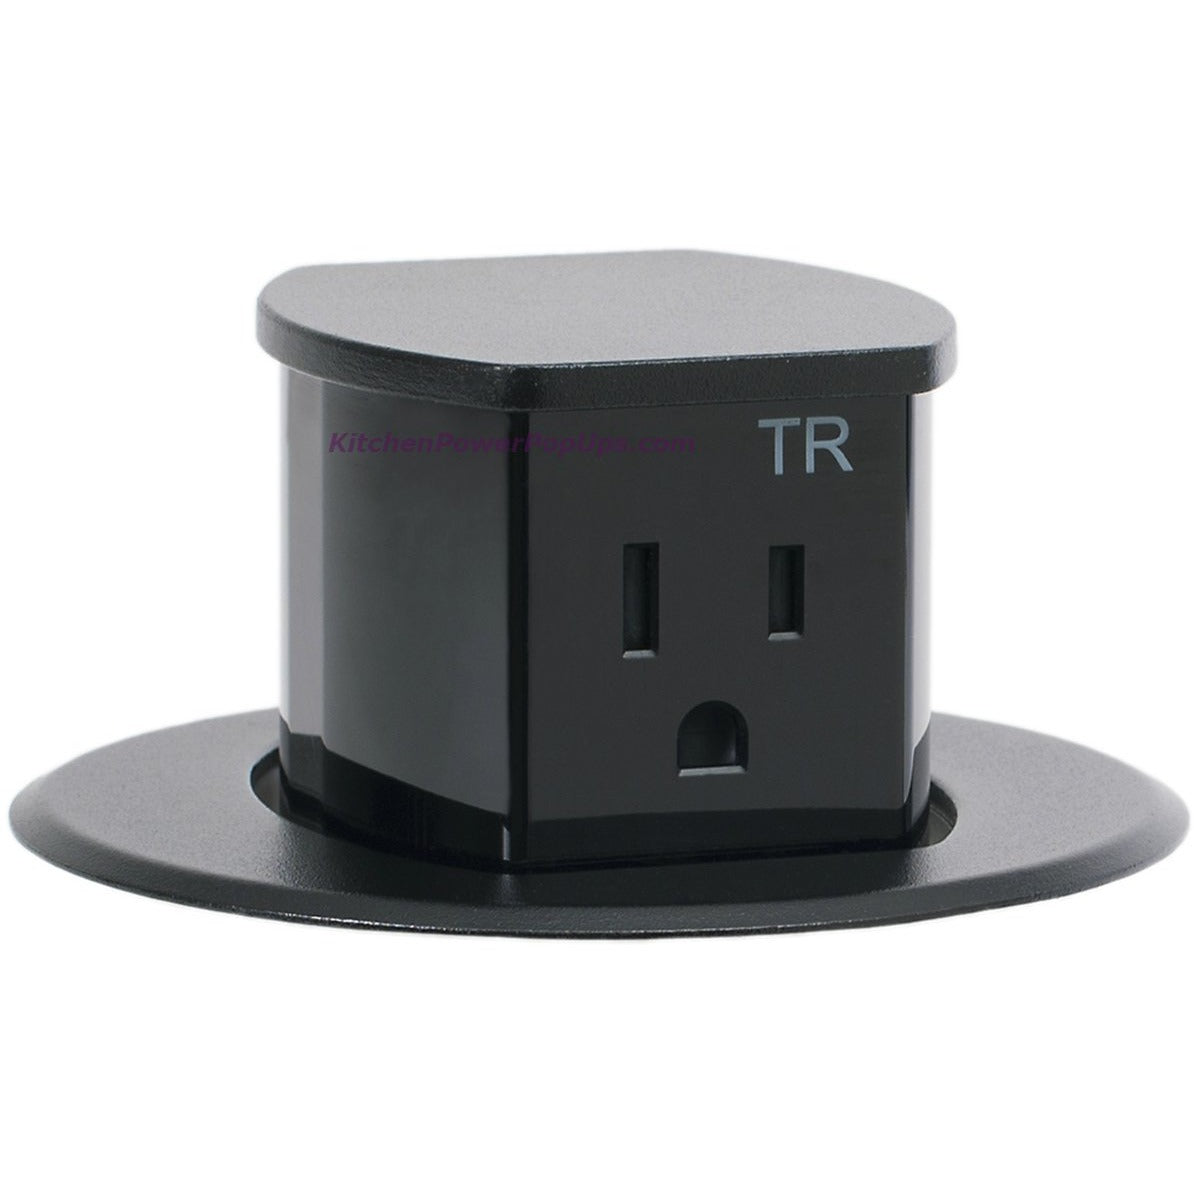 Hubbell Rct200bk Waterproof Dual Sided Pop Up Counter Outlet Black Kitchen Power Pop Ups